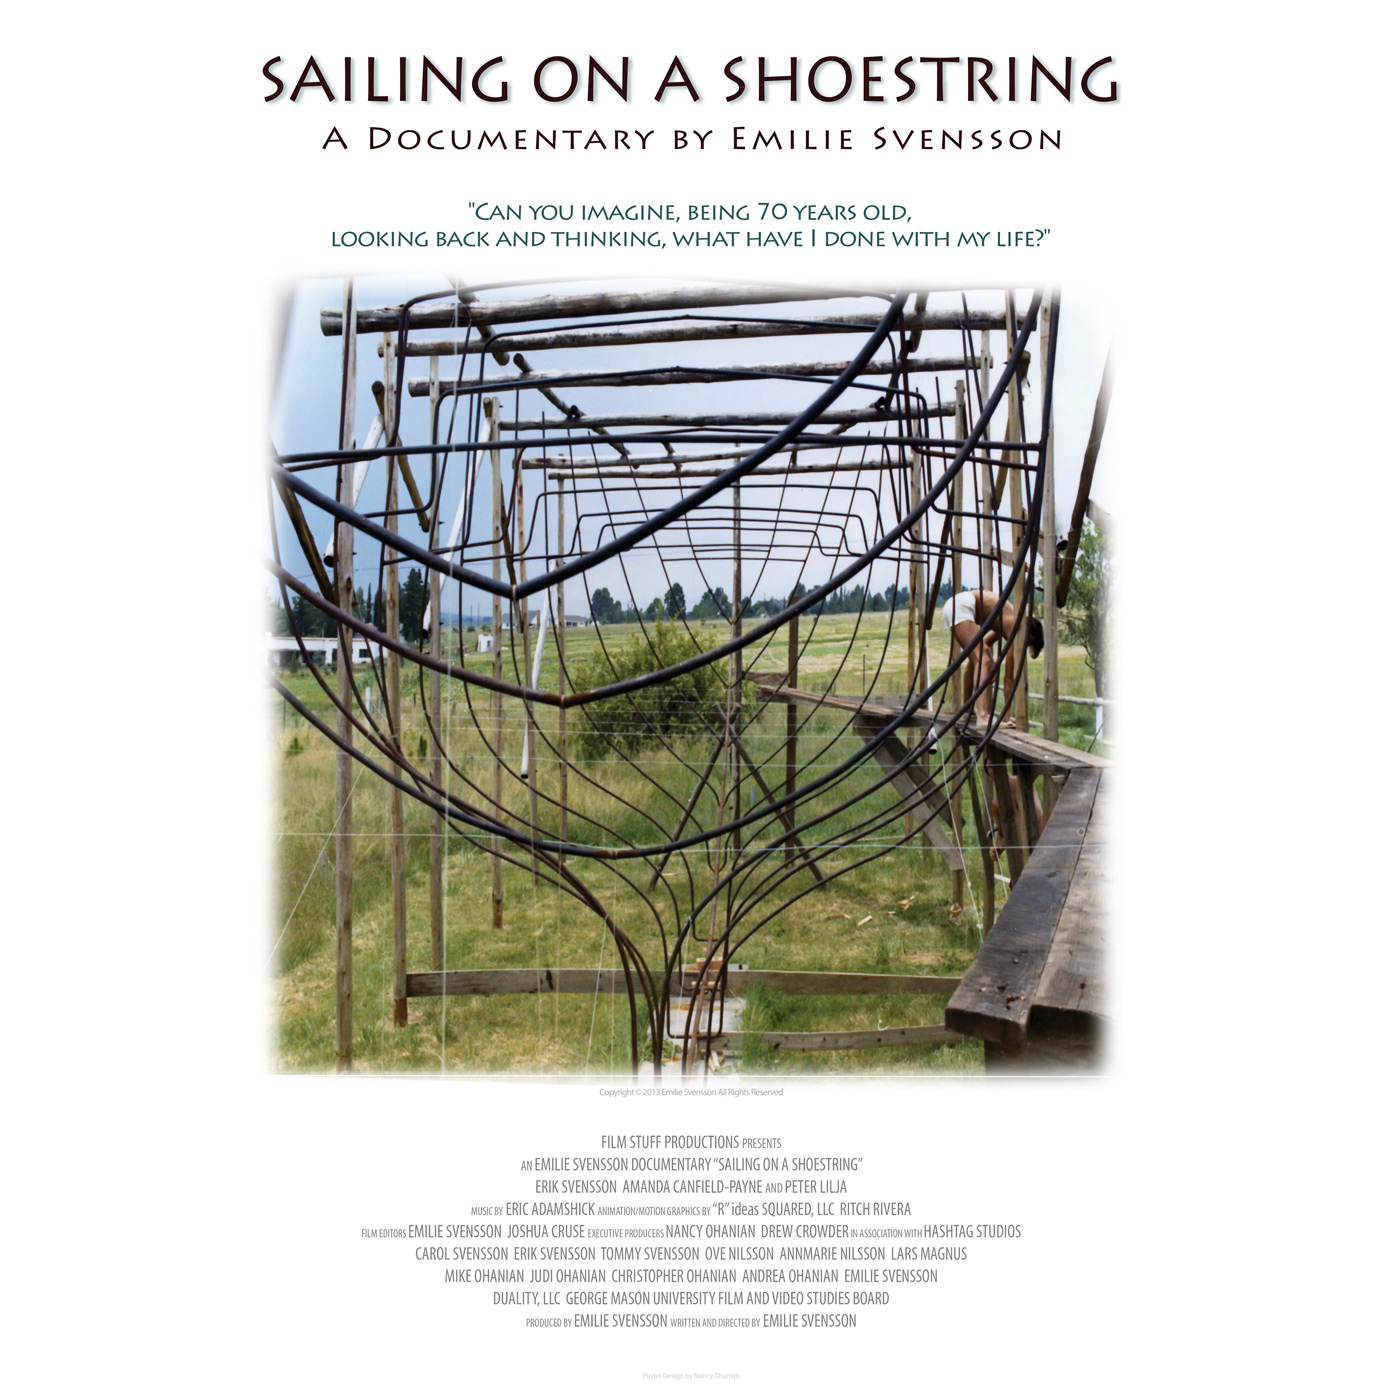 49: Sailing on a Shoestring